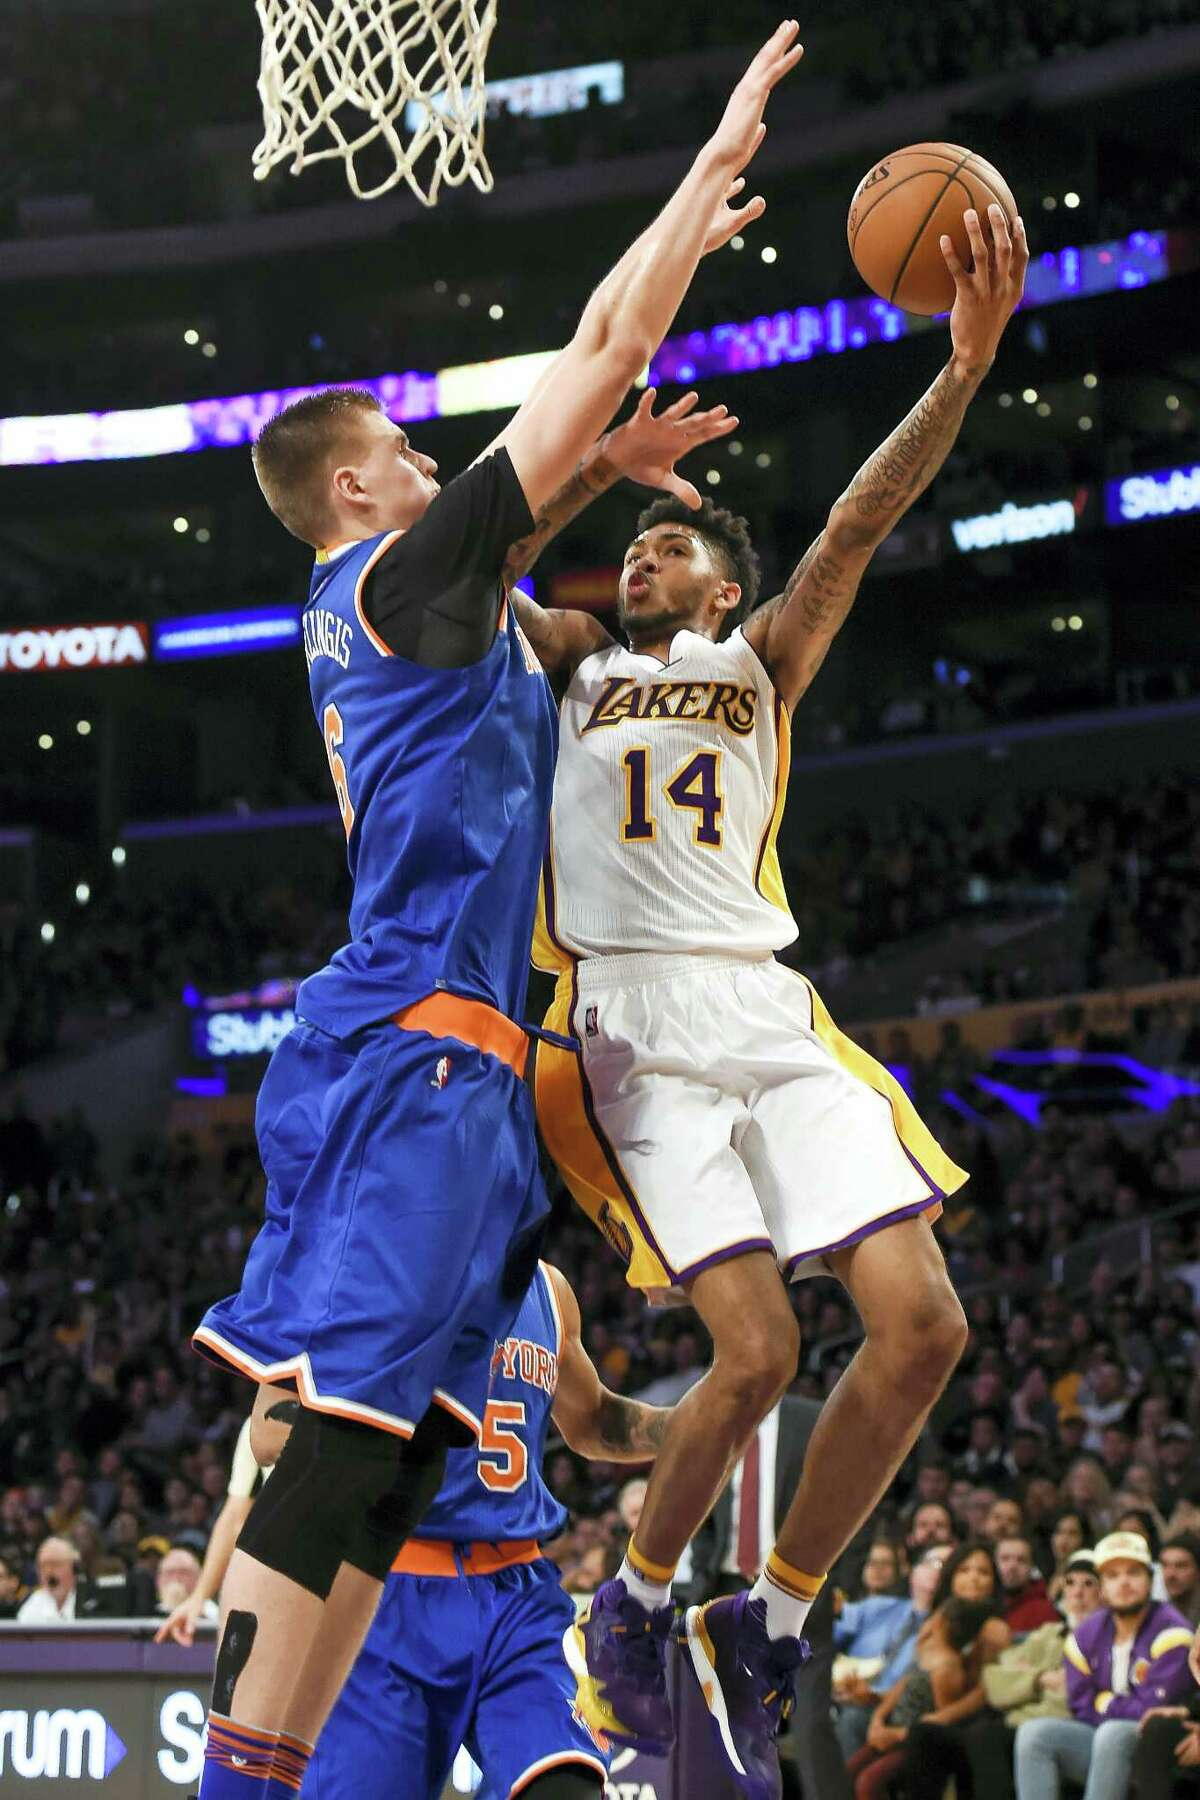 Los Angeles Lakers forward Brandon Ingram (14) battles New York Knicks forward Kristaps Porzingis (6), of Latvia, as he drives to the basket during the second half of an NBA basketball game on Sunday, Dec. 11, 2016 in Los Angeles. The Knicks win 118-112.